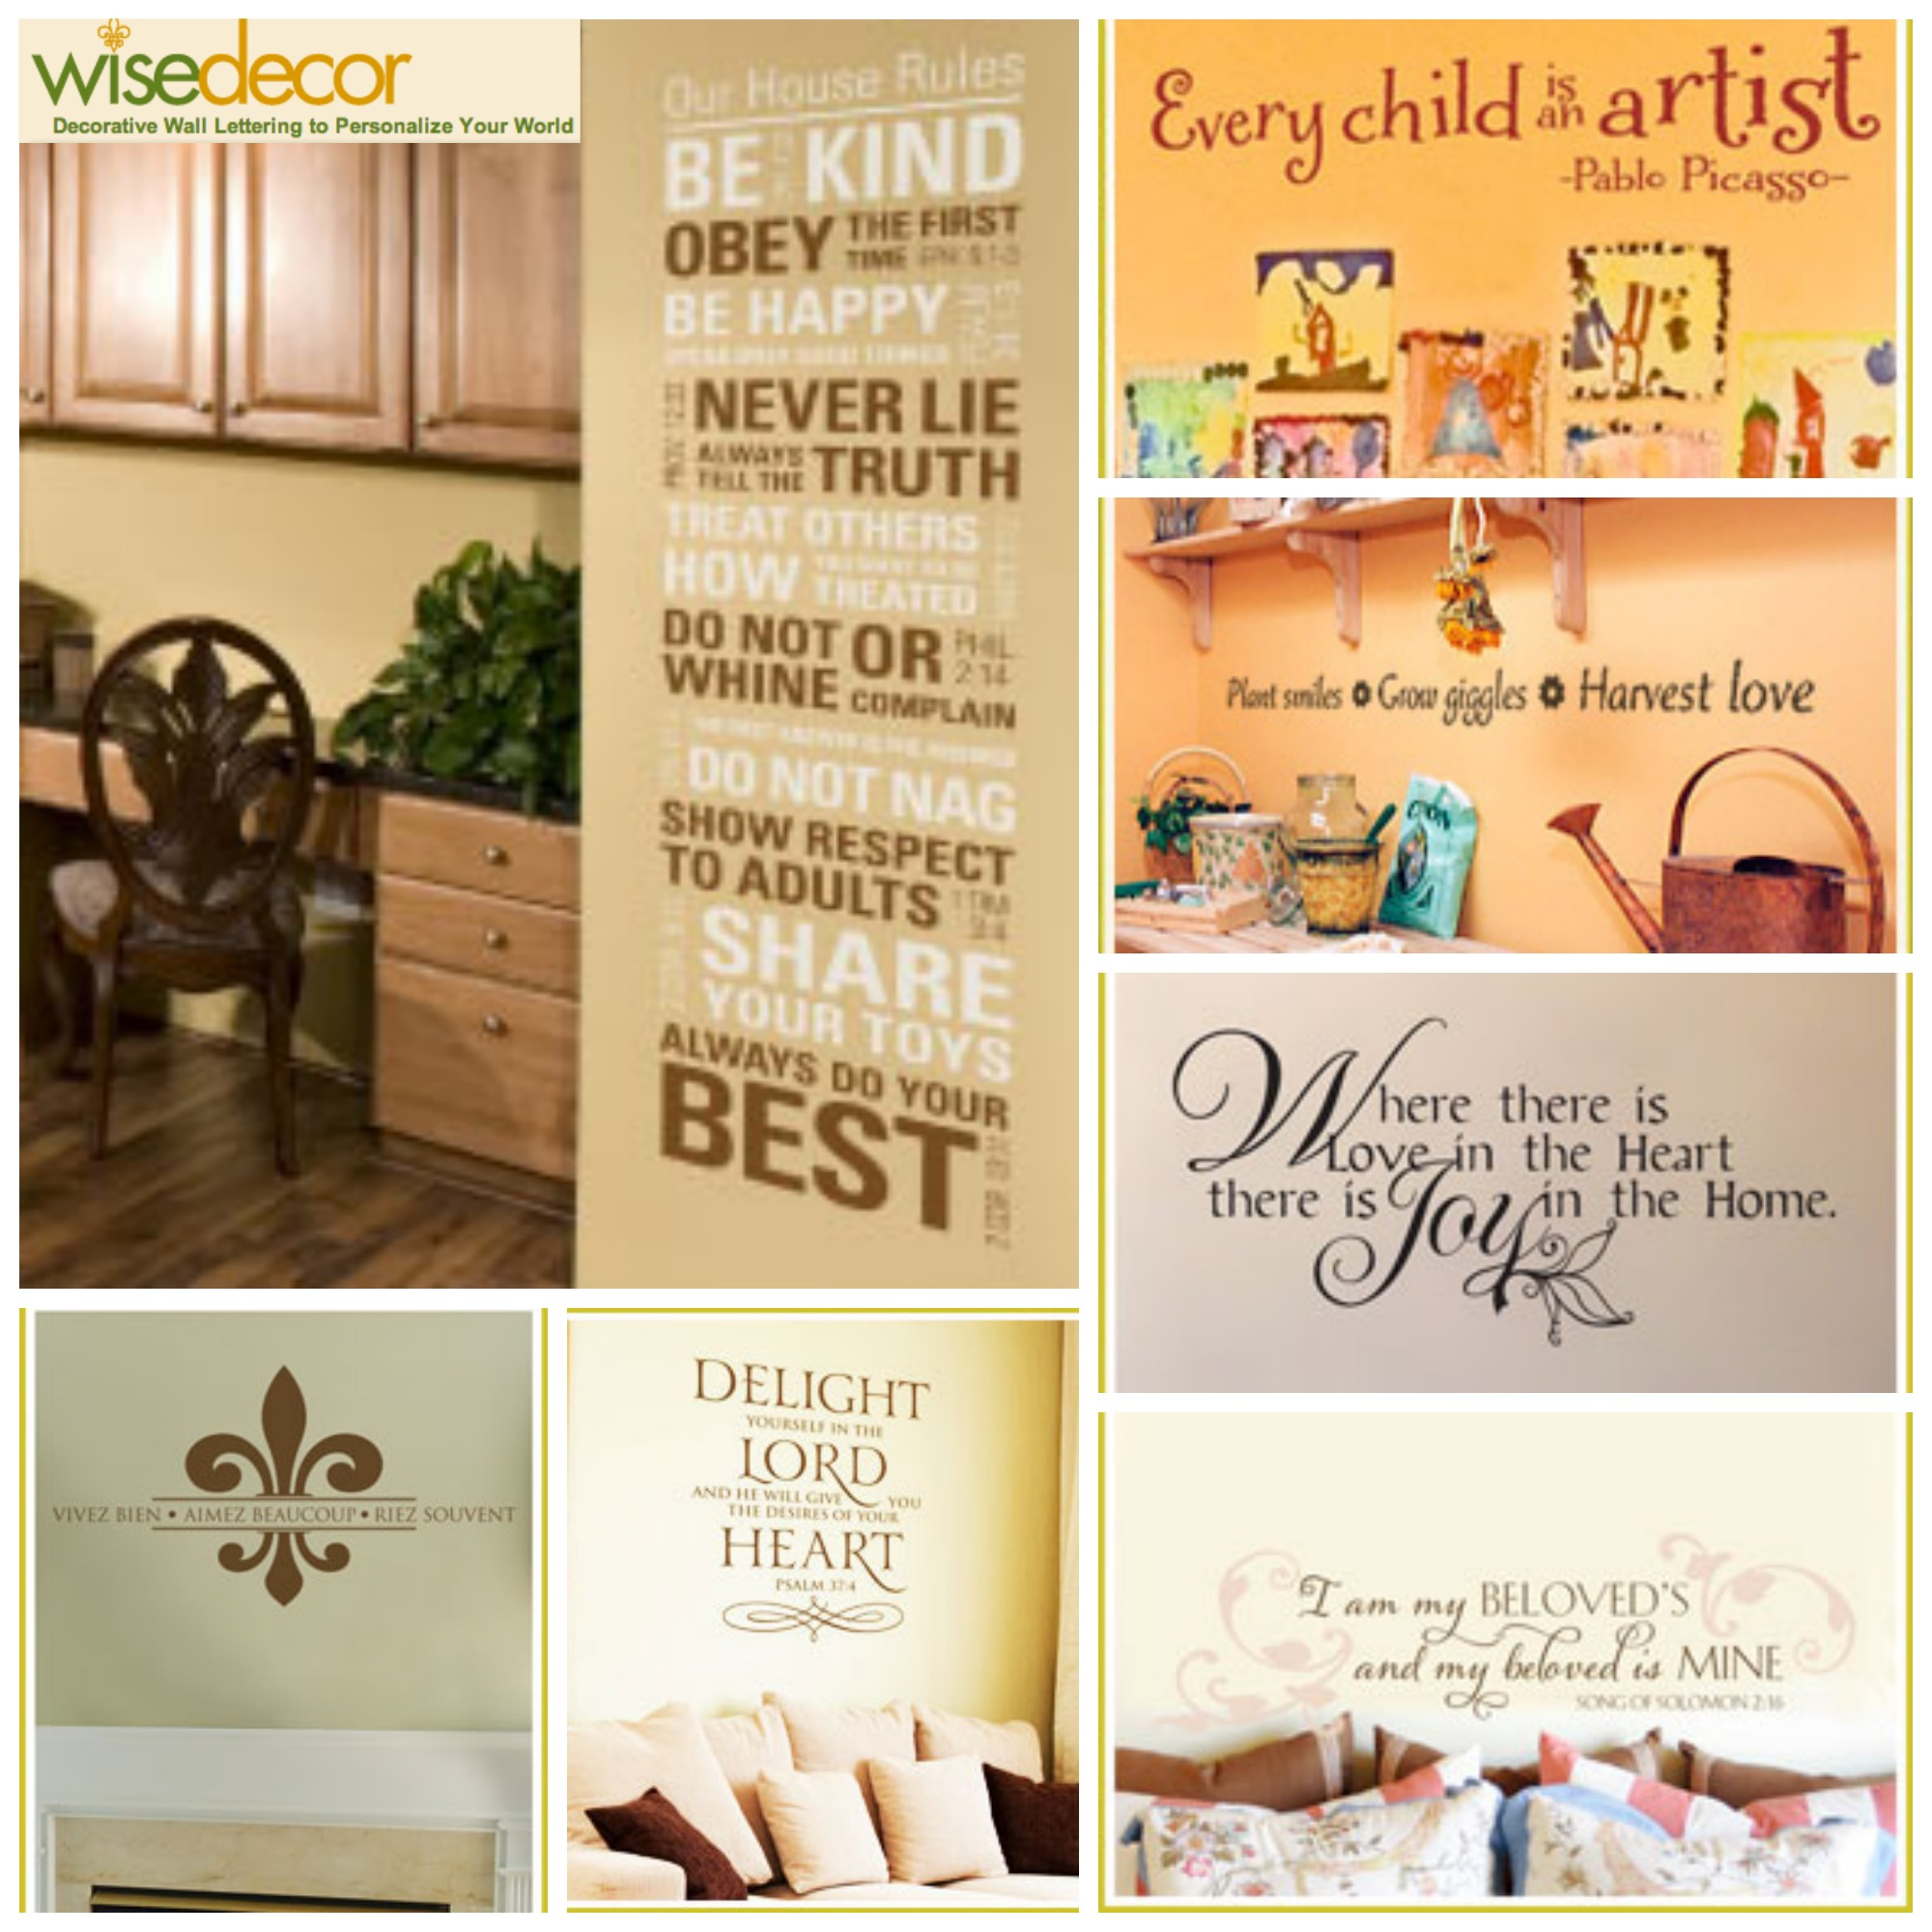 Let the Good Times Roll {WiseDecor Giveaway} - Whole Family Strong